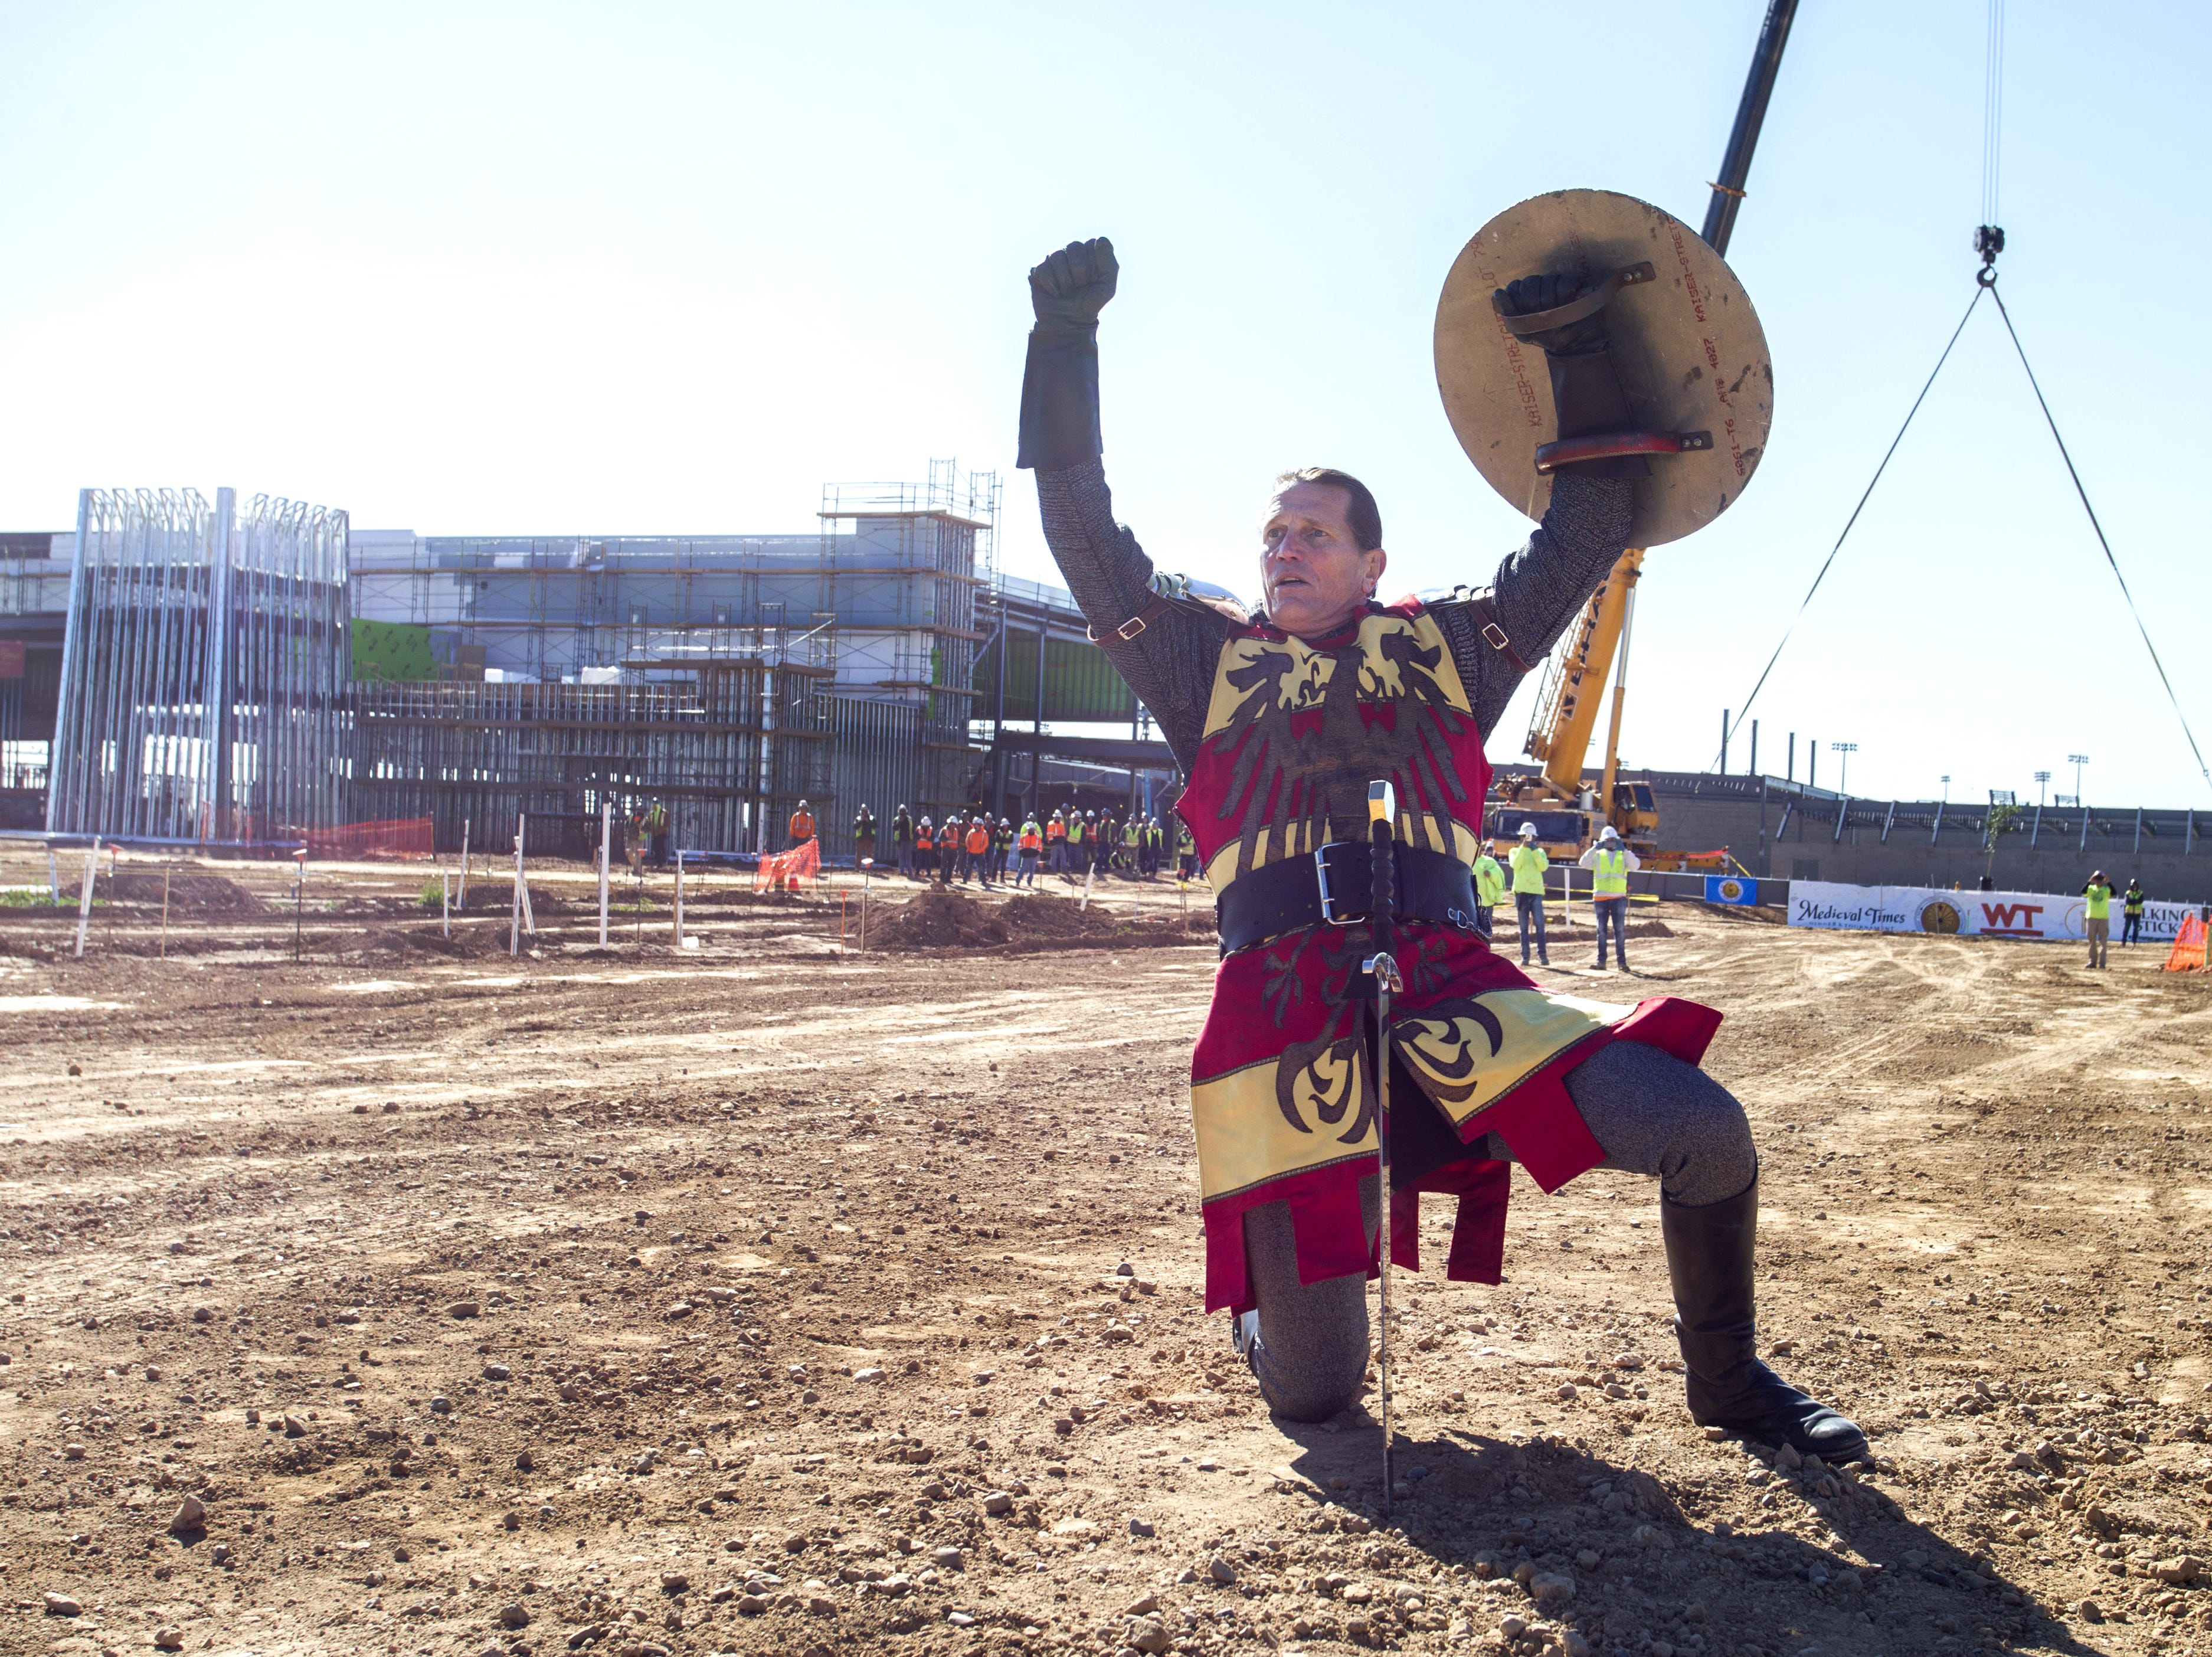 Medieval Times knight Tim Baker celebrates his win over fellow knight Jim Collins in front of the castle that's currently under construction in the Salt River Pima-Maricopa Indian Community's Talking Stick Entertainment District in Scottsdale, Feb, 20, 2019.